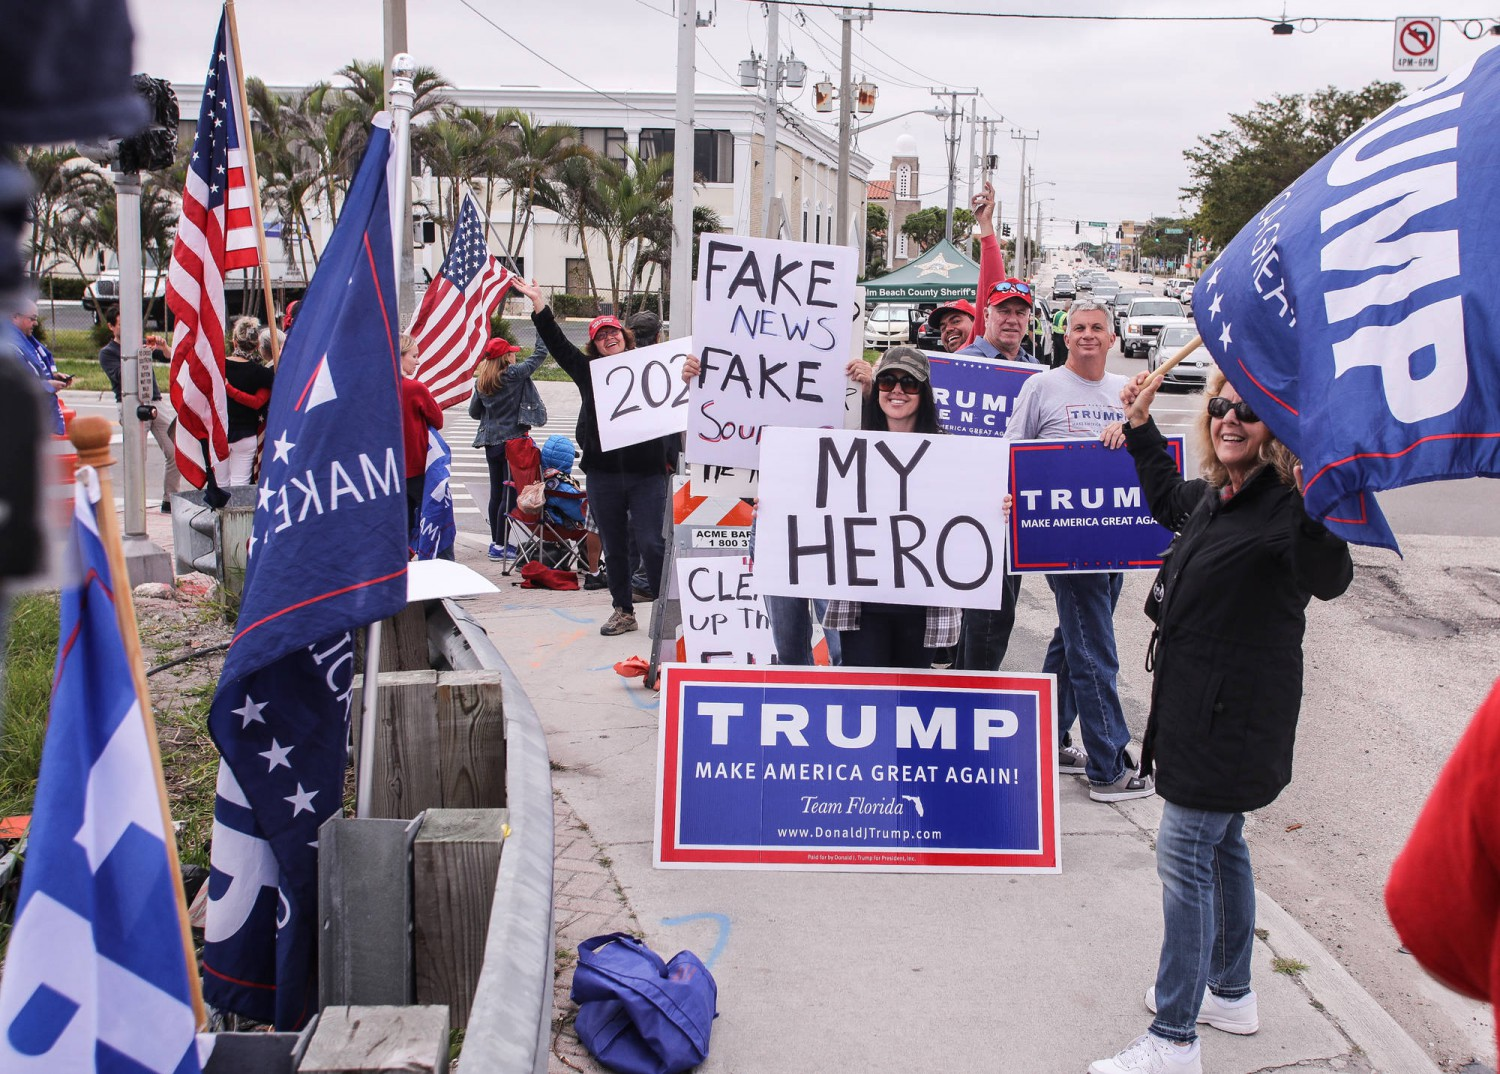 Sostenitori di Trump in Florida - DAMON HIGGINS/THE PALM BEACH POST VIA ZUMA WIRE